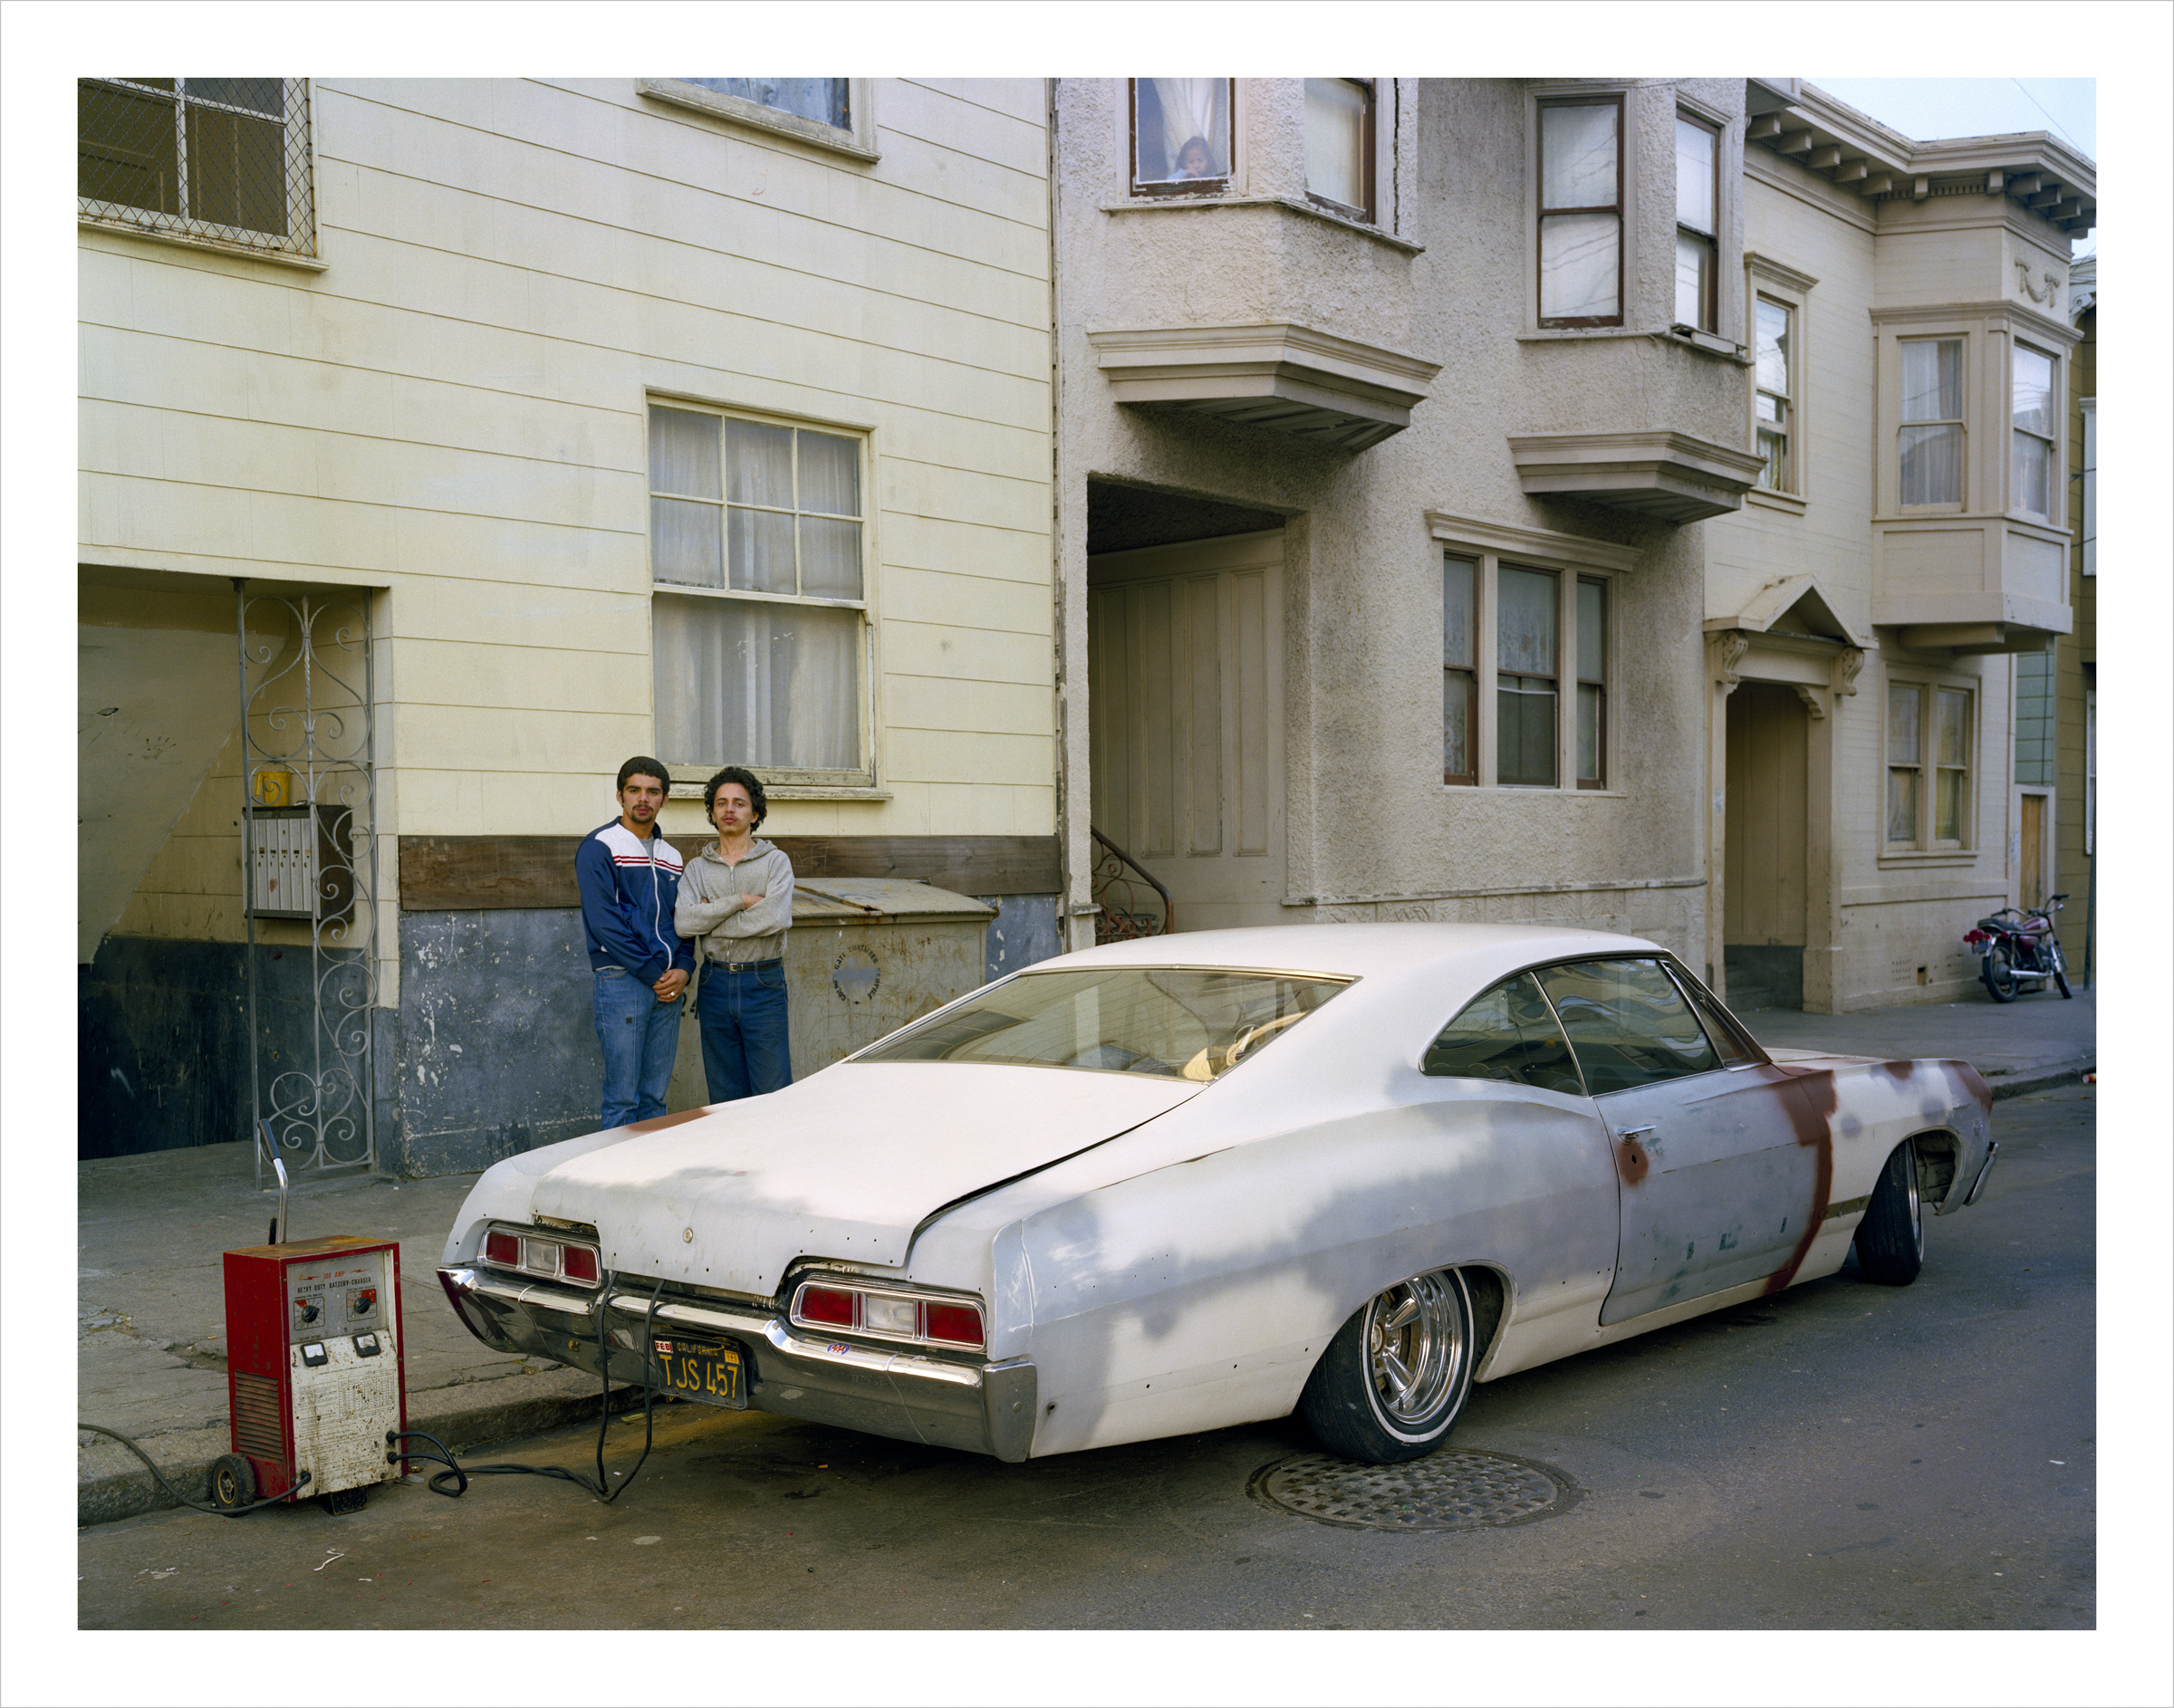 JANET DELANEY Charging battery, Moss Street, 1982 Archival Pigment Print, 2016 16 x 20 inches, edition of 5 20 x 24 inches, edition of 2 30 x 40 inches, edition of 2